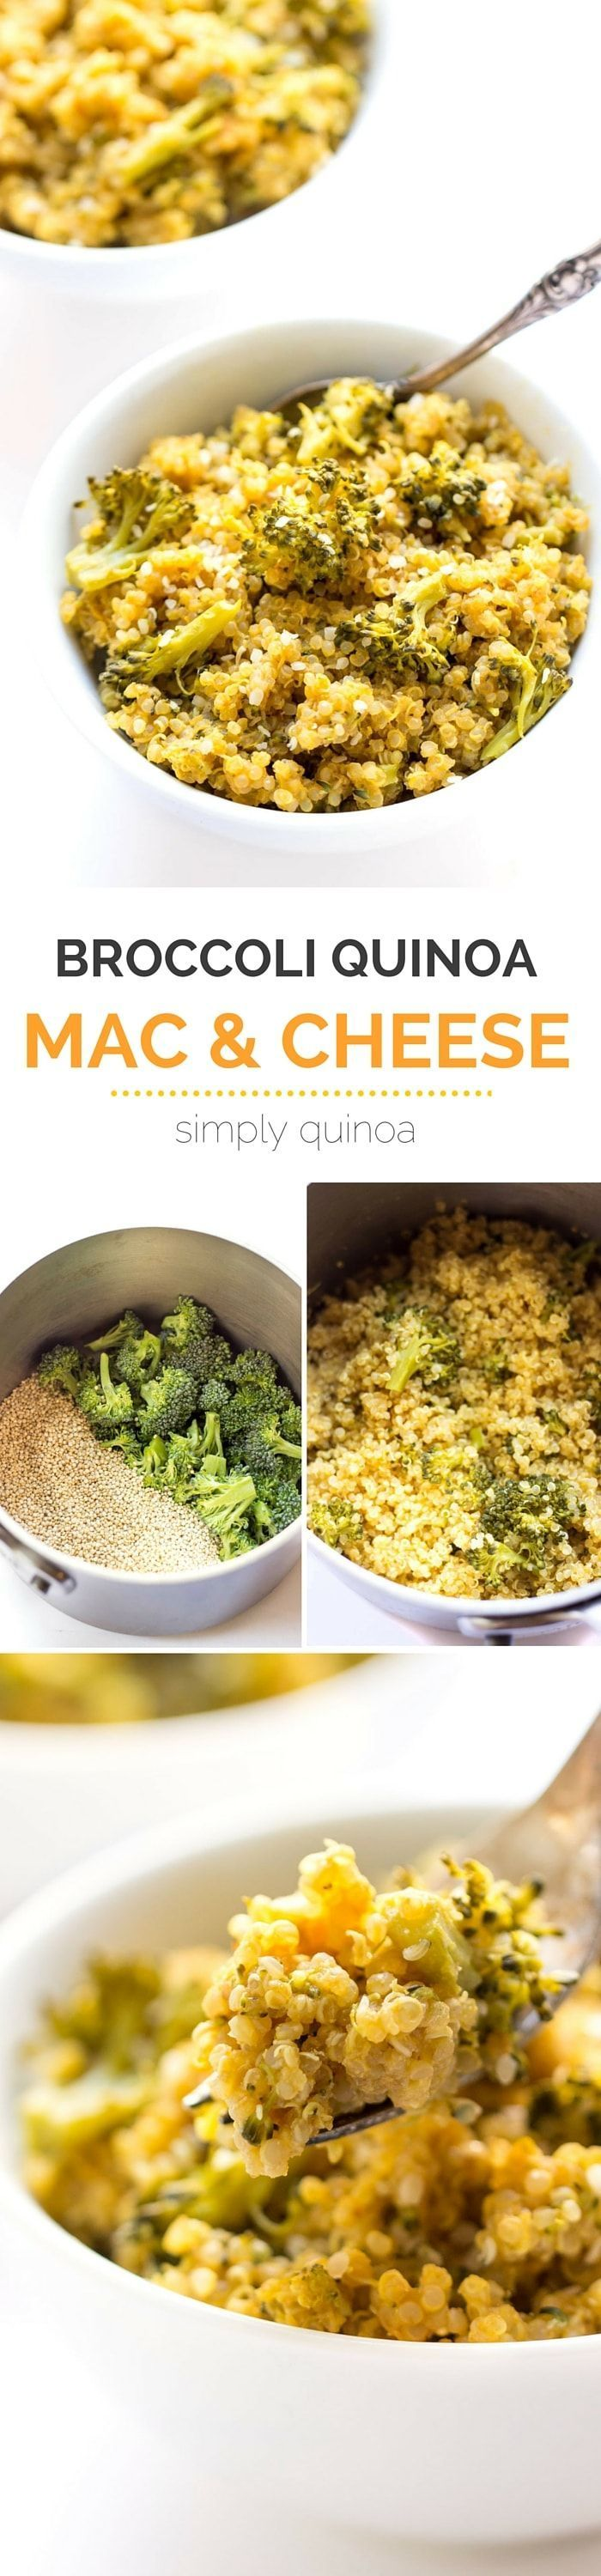 QUINOA MAC AND CHEESE with broccoli -- the perfect dinner recipe when you think you have no time to cook. Takes just one pot, takes less than 20 minutes AND it only uses 5 ingredients!    262 calories, 7 WW points